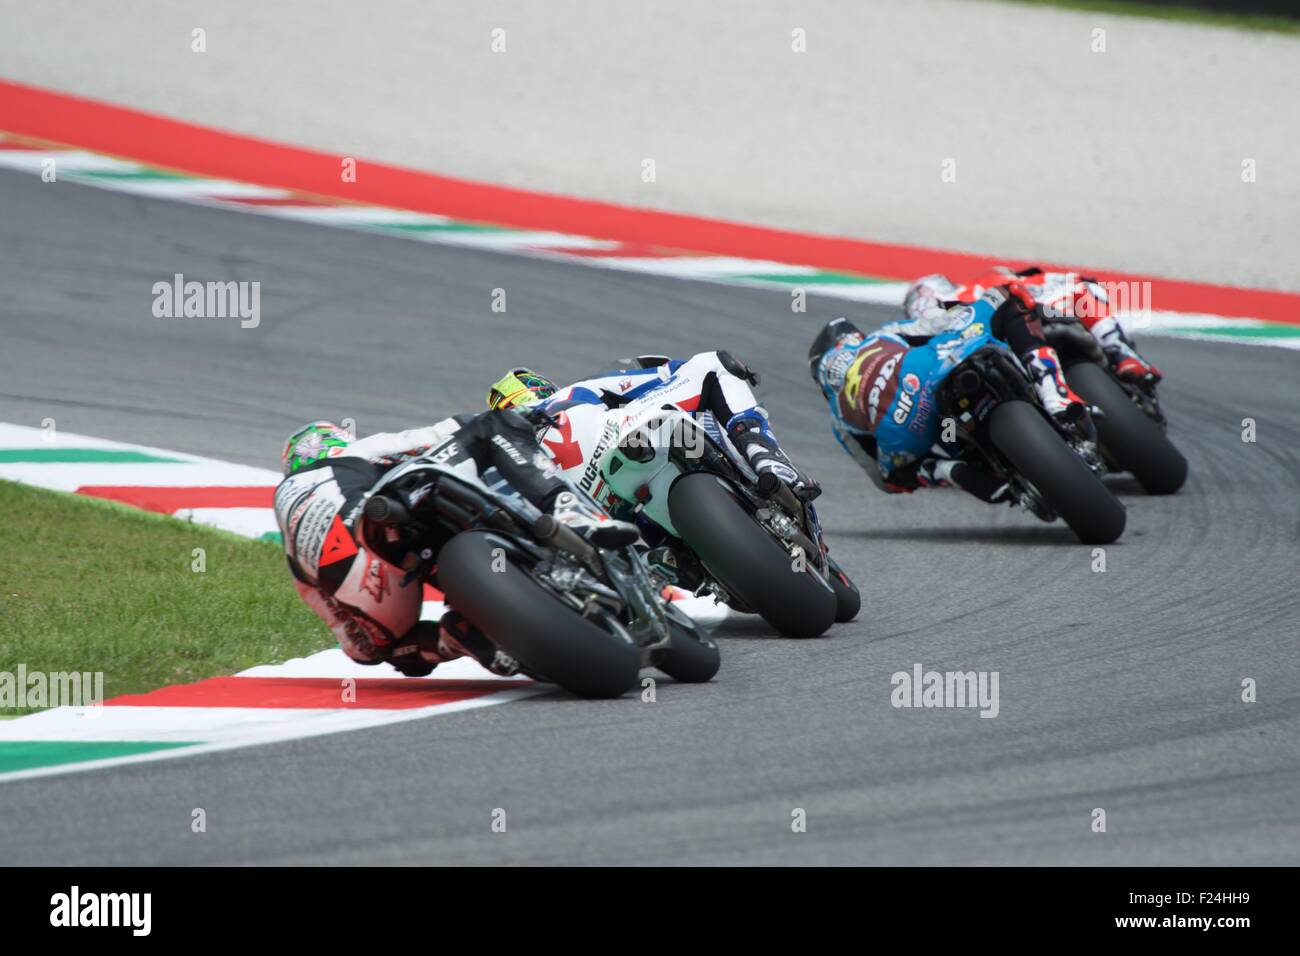 Circuit Italia Motogp : Mugello circuit italy th may the motogp riders during